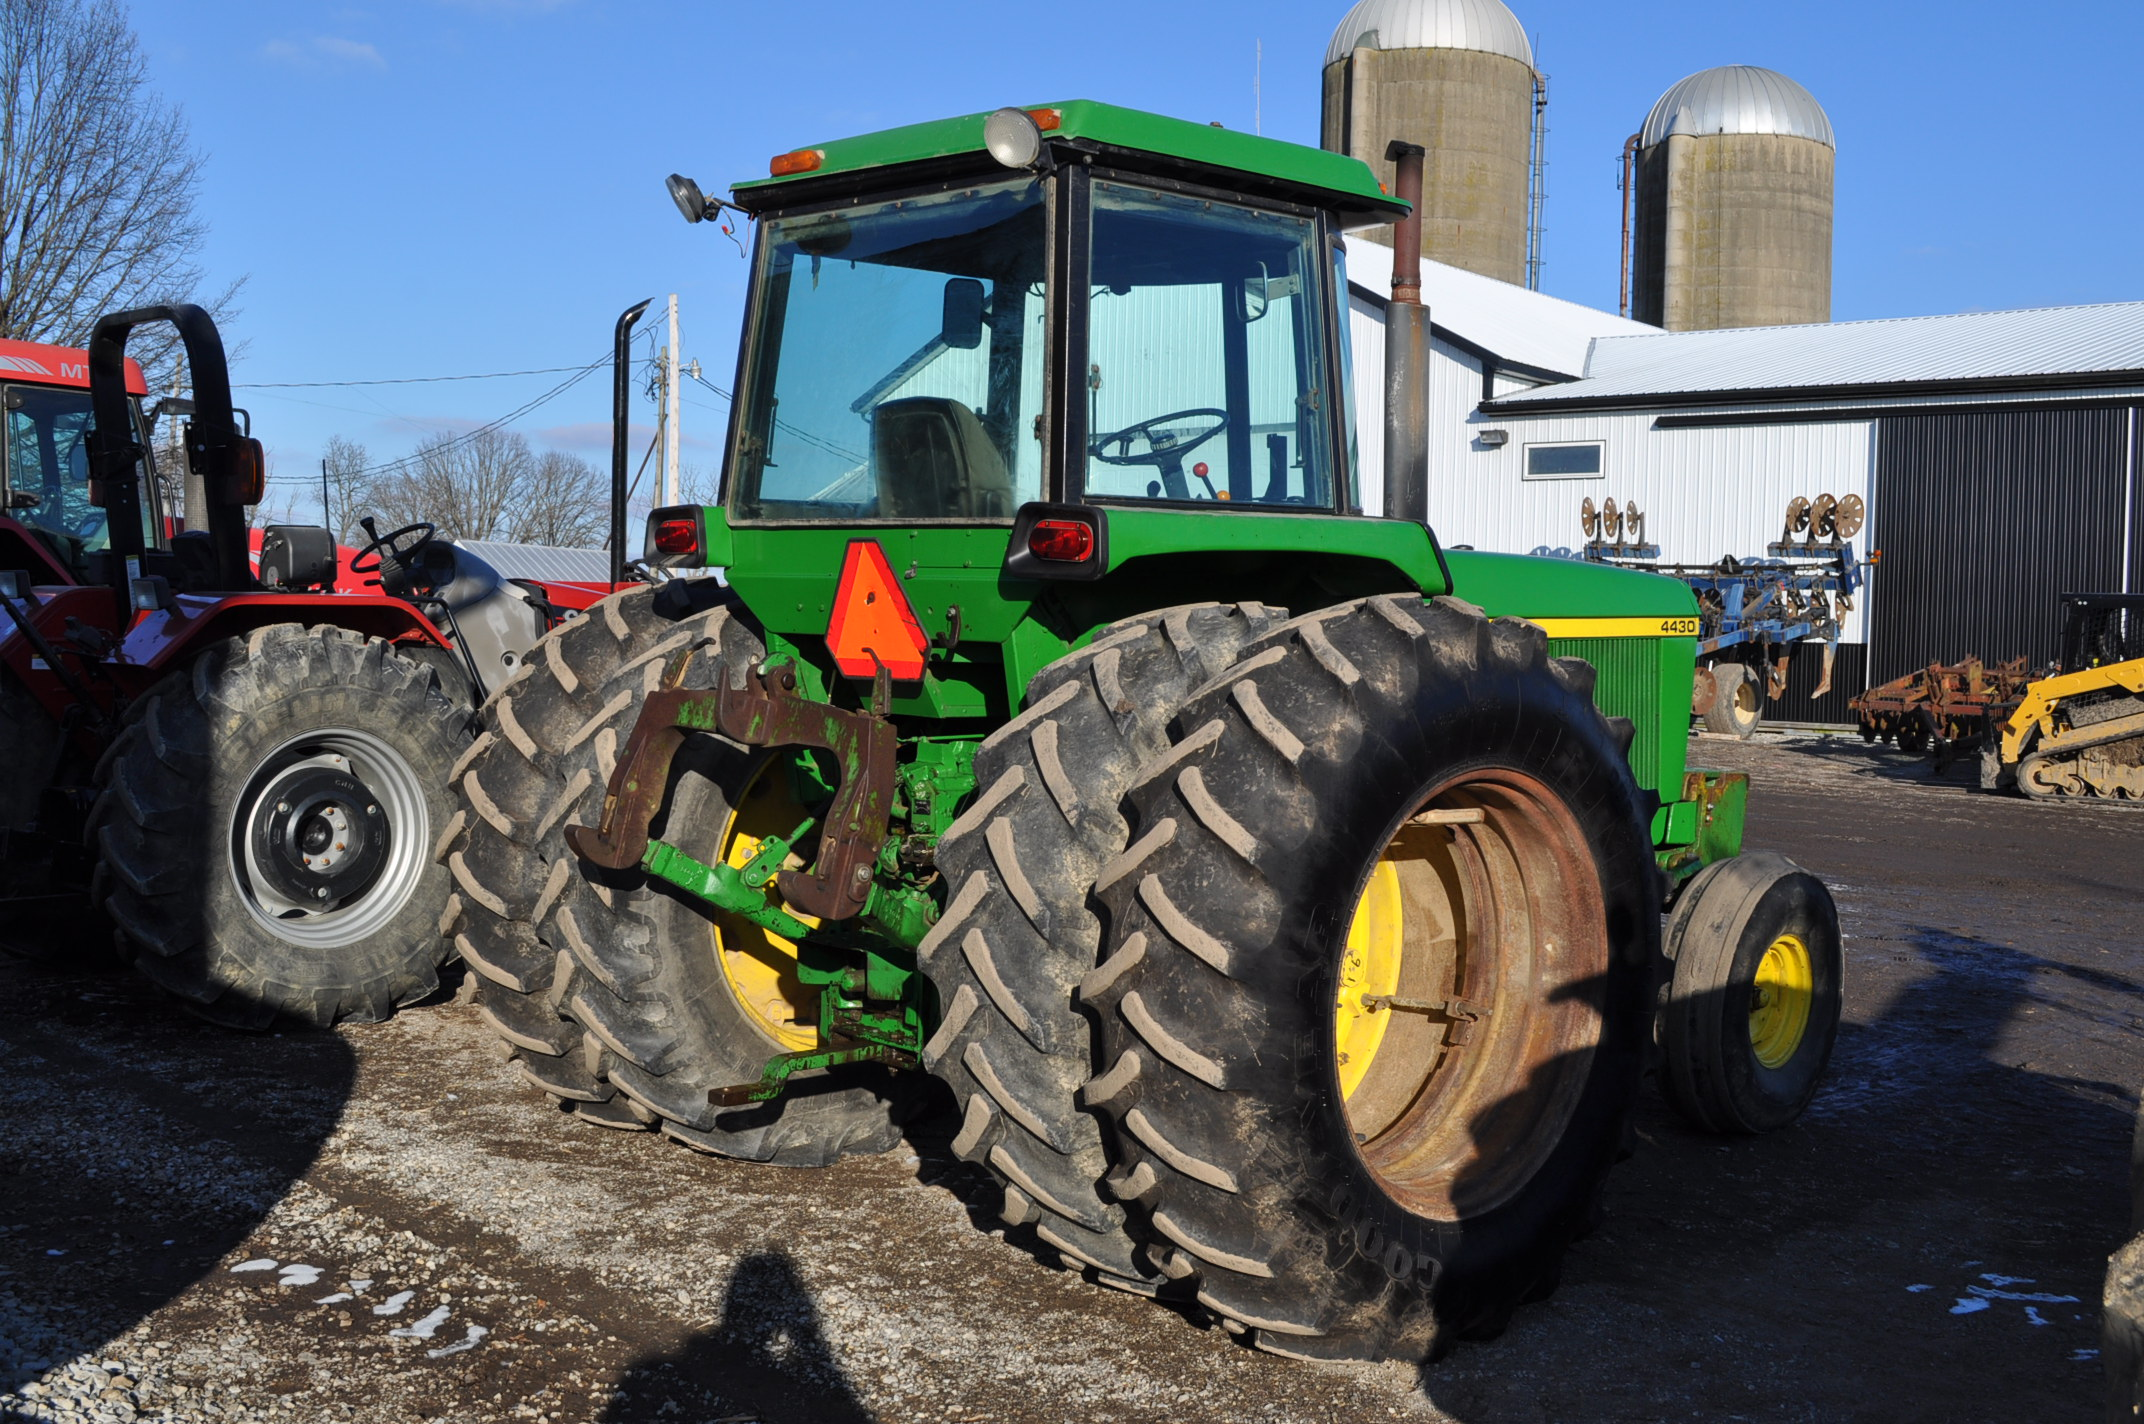 John Deere 4430 tractor, C/H/A, 18.4-38 duals, 11.00-16 front, front weights, Quad range, 2 hyd, 3 - Image 4 of 18